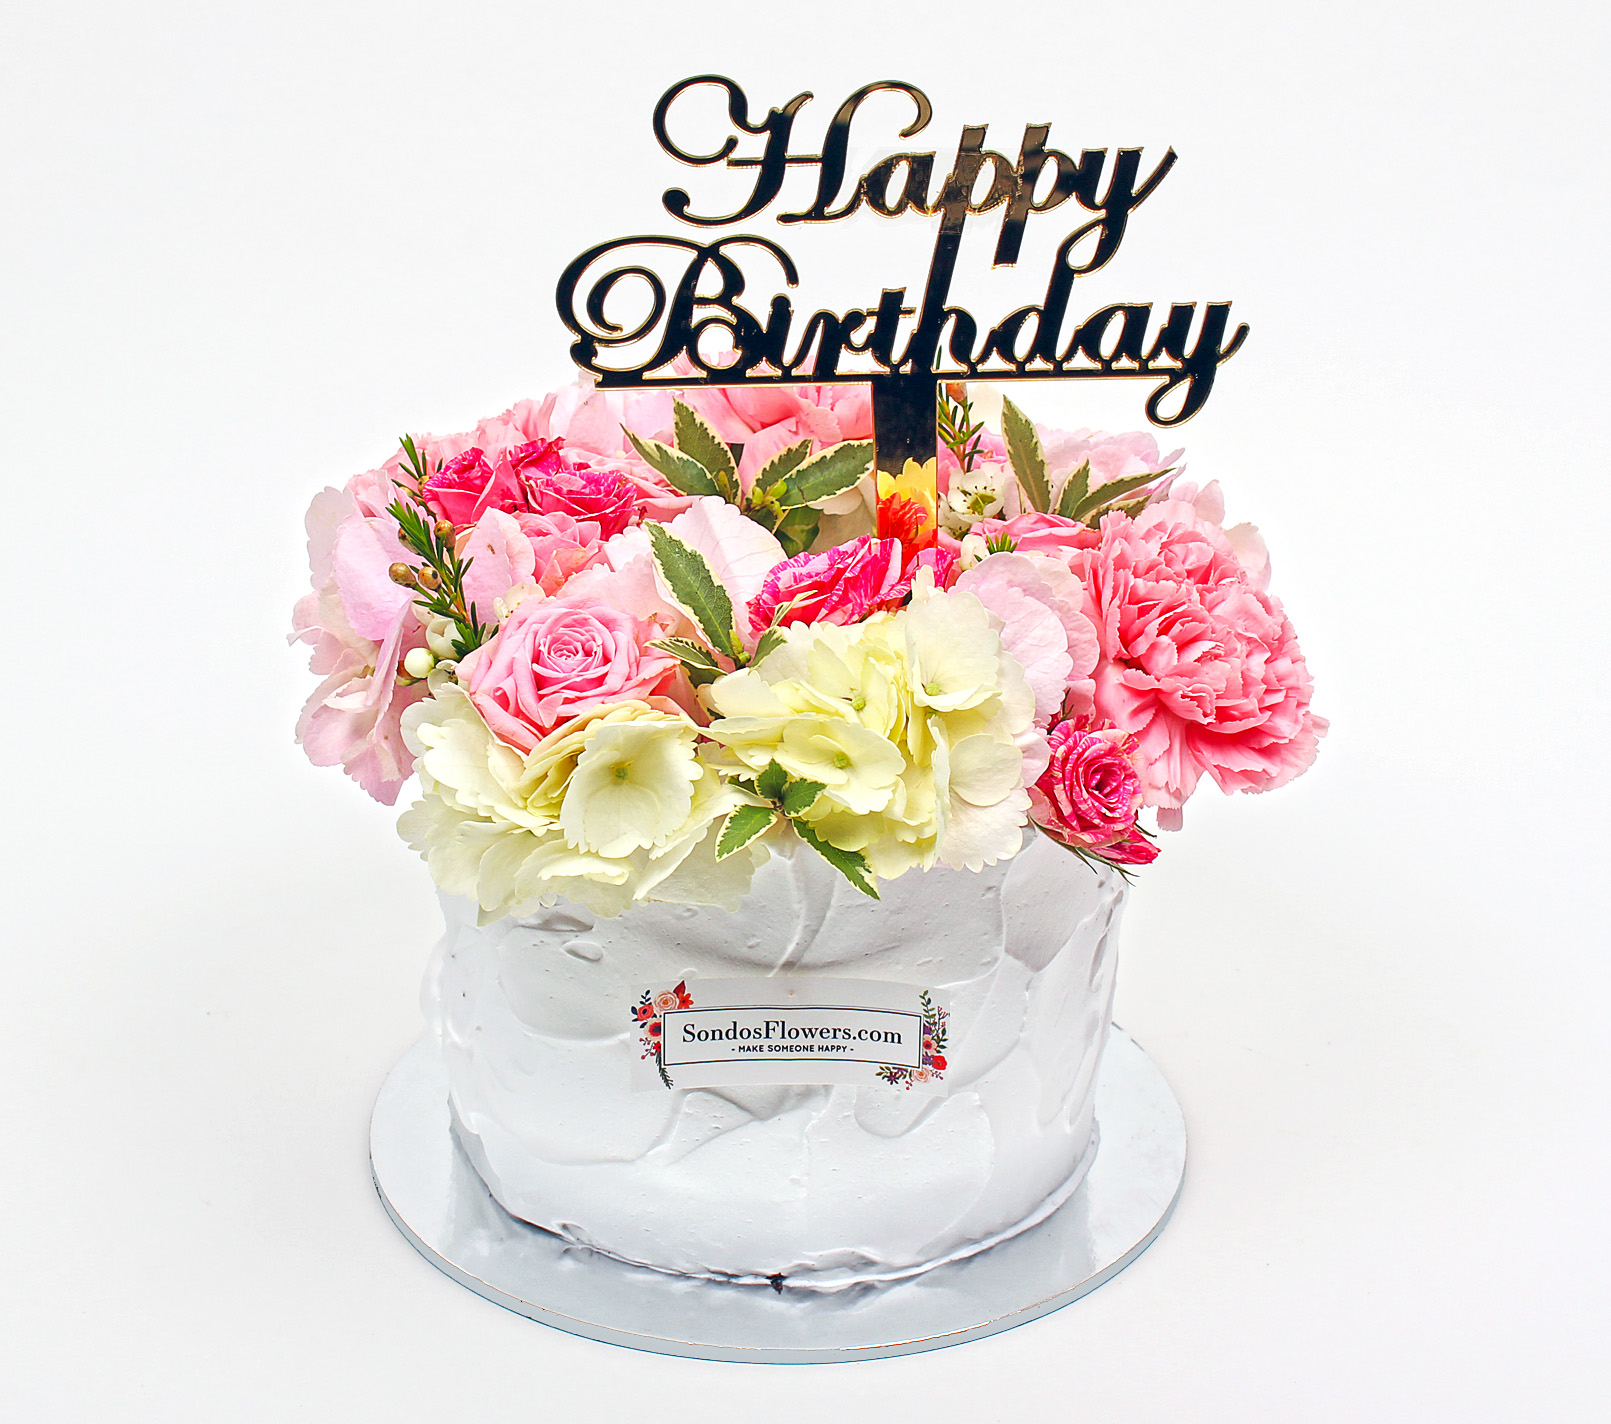 Happy Times Send Fresh Flowers Gifts Online Kuwait Sondos Flowers